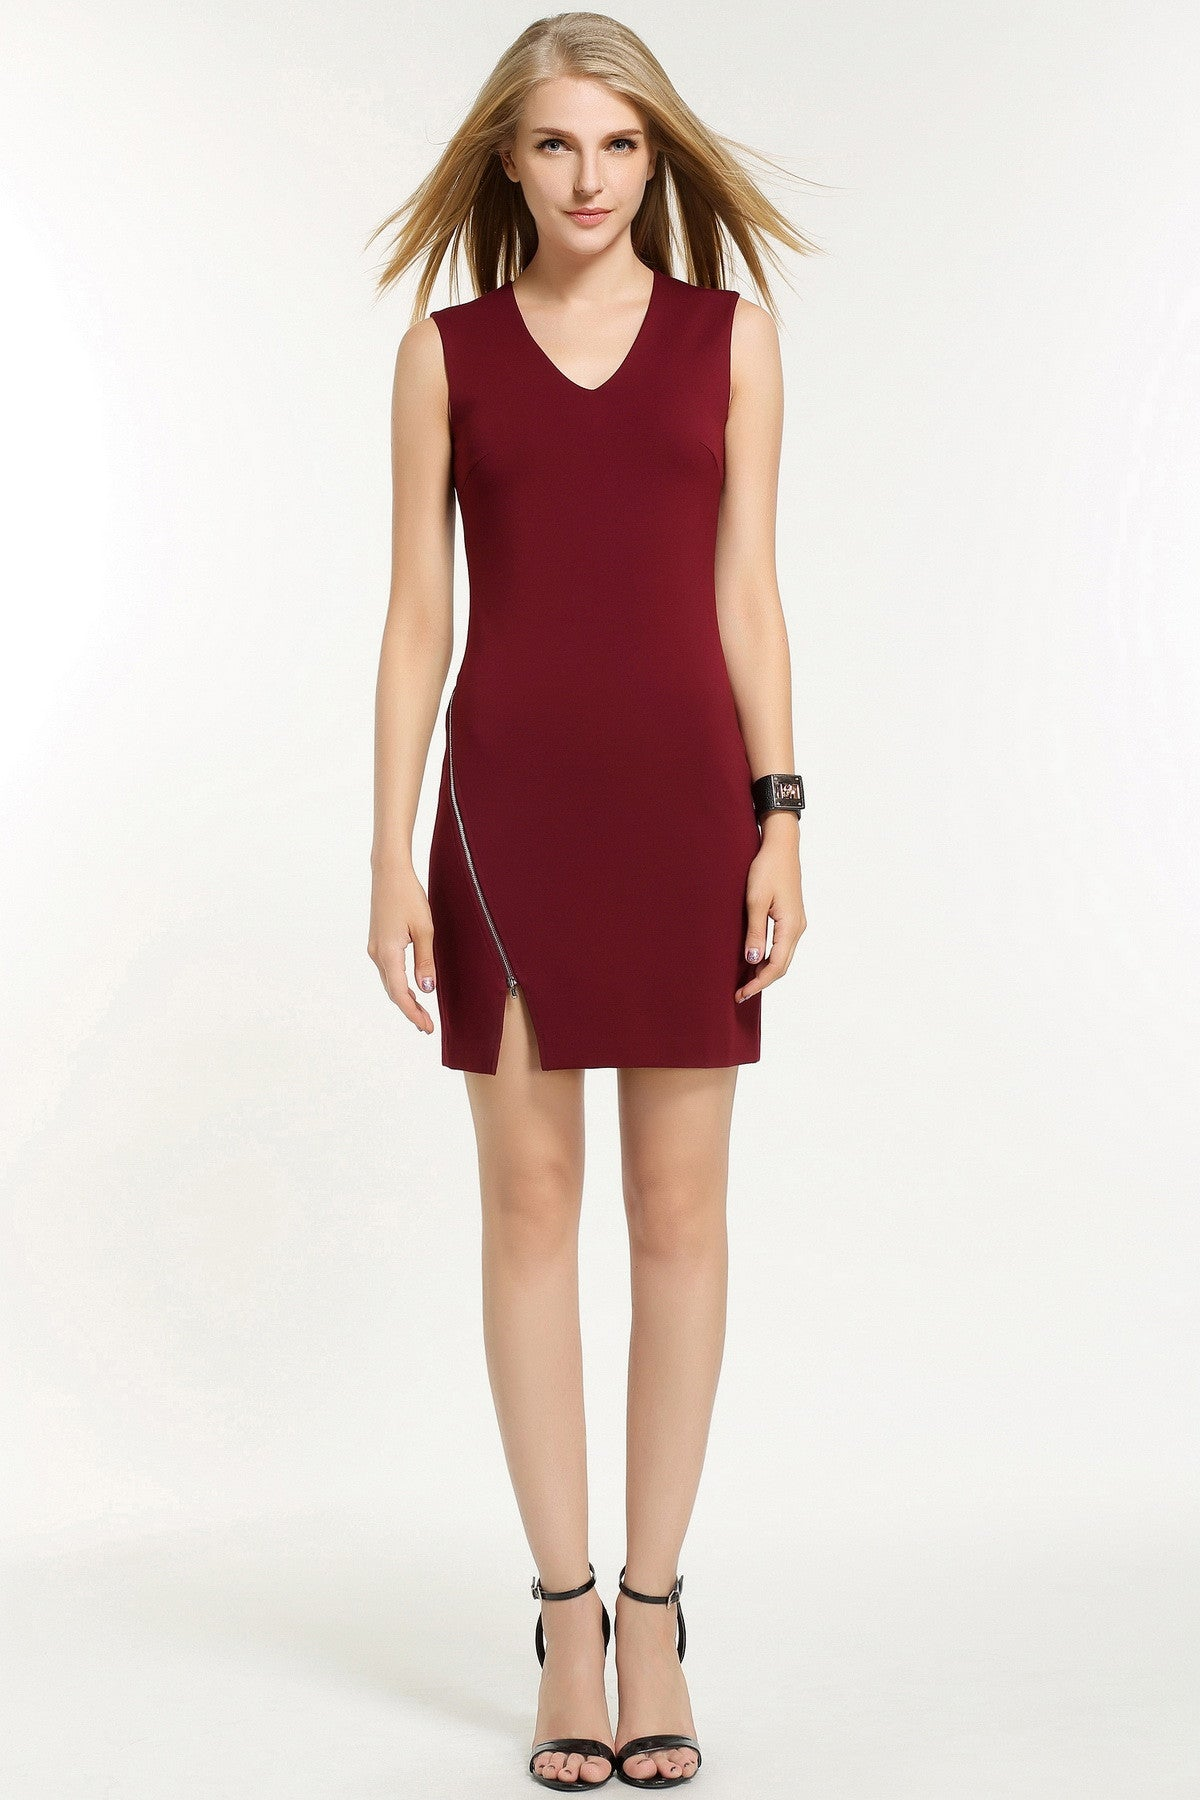 OFF-CENTRE ZIP FASTENING DRESS 1602109 RED WINE